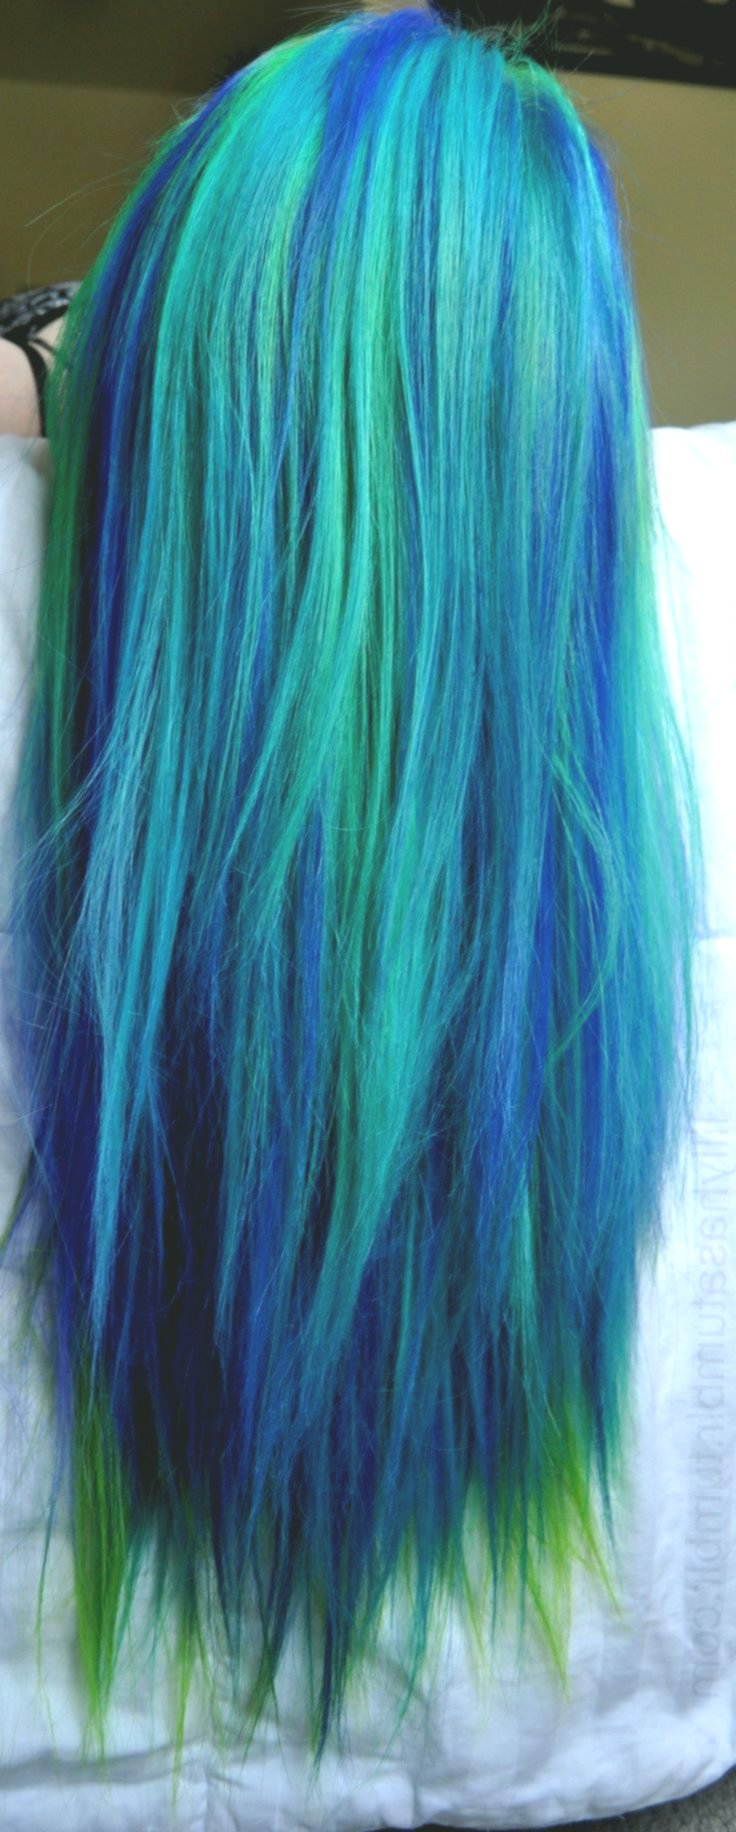 best green hair color online New Green hair color design